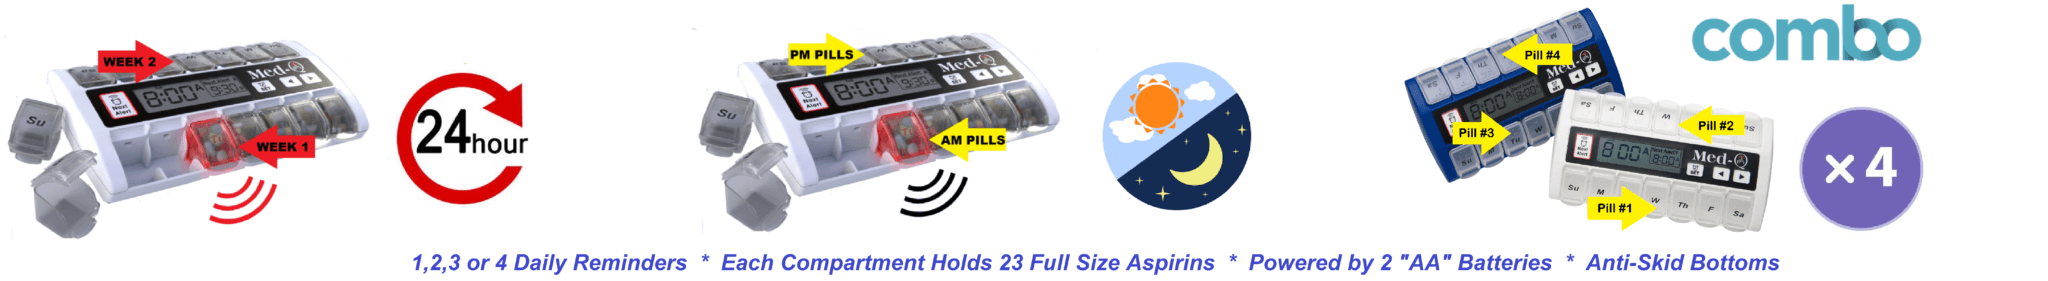 Best automatic pill dispenser for alzheimer's